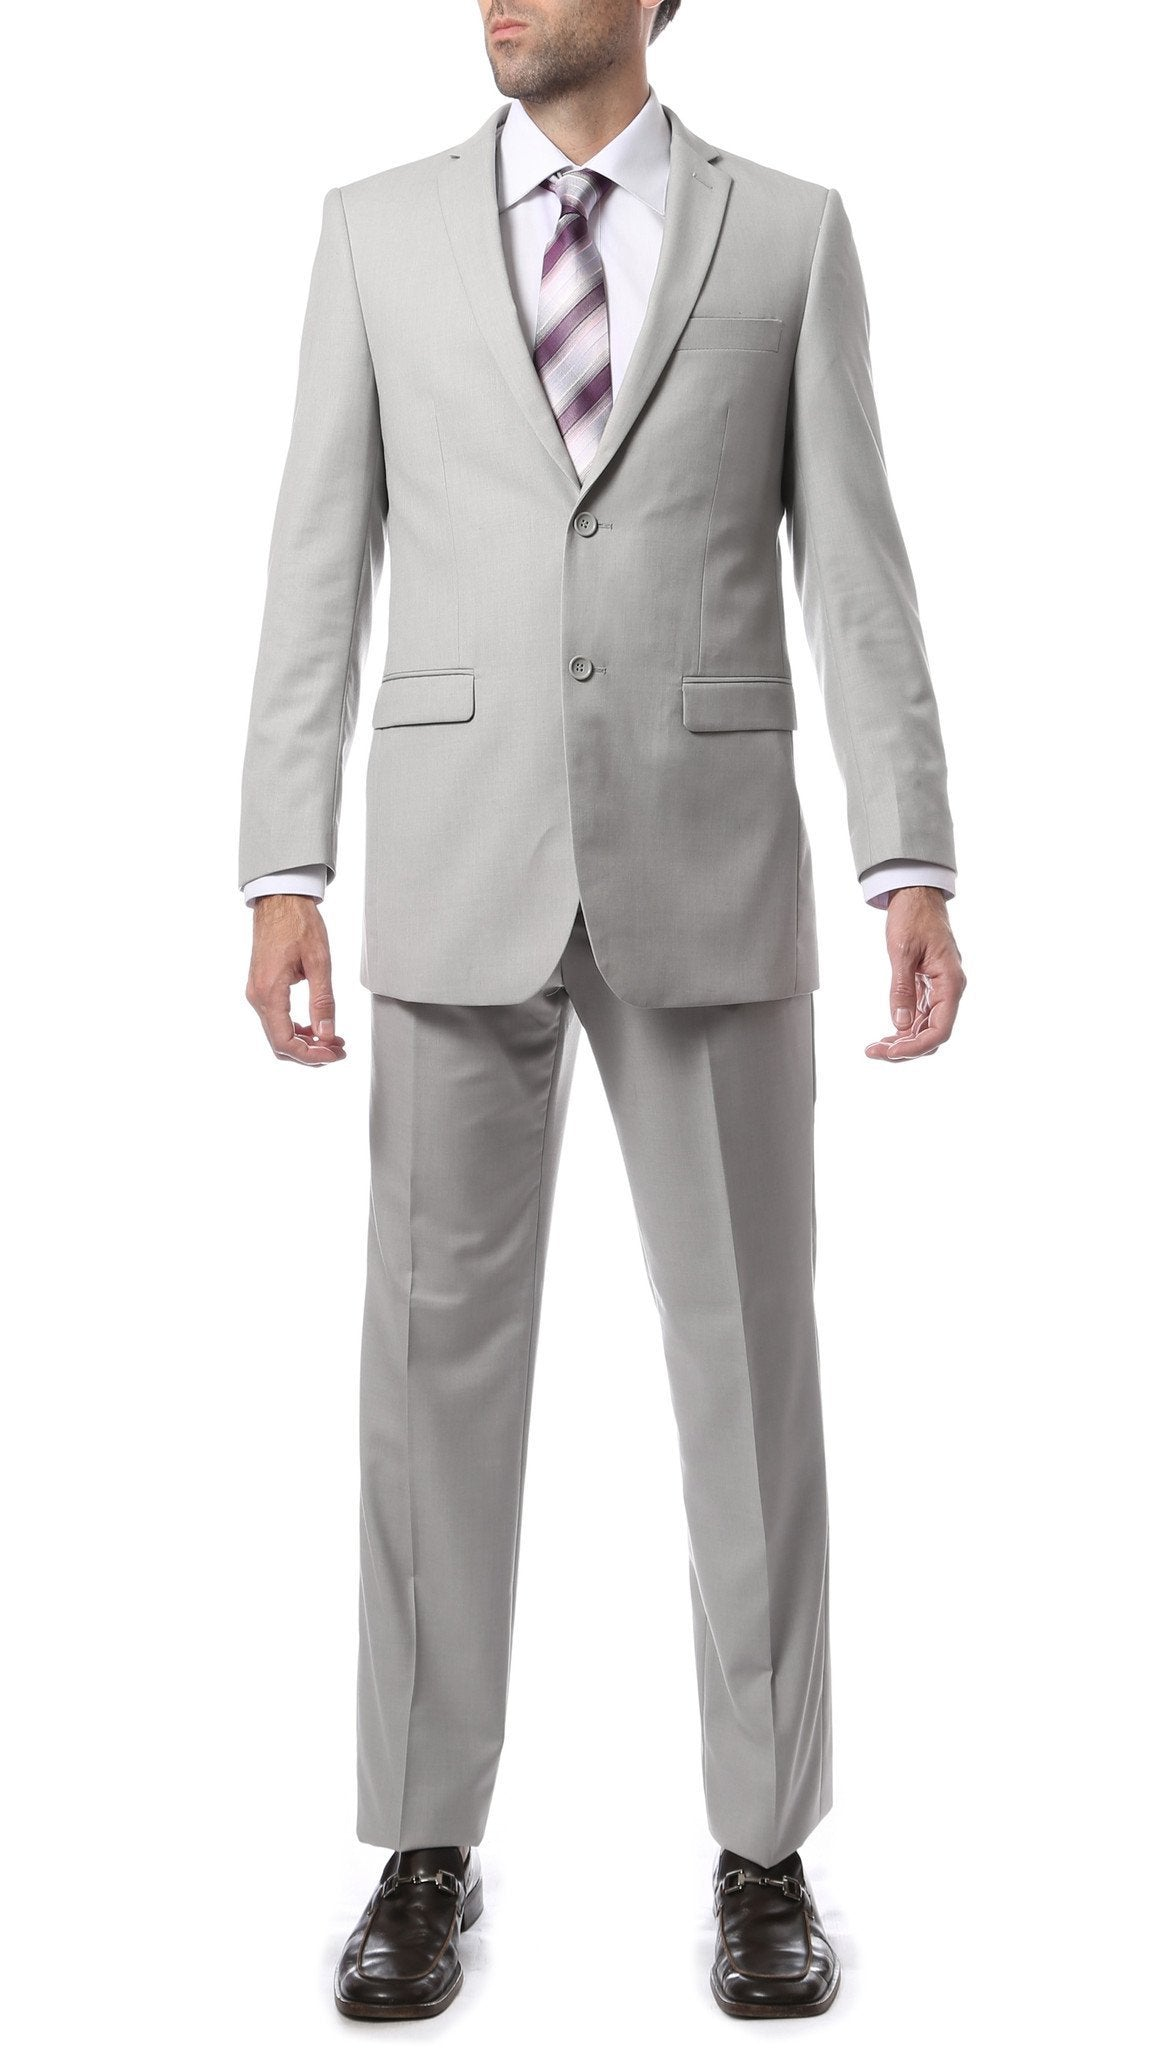 Premium Mens 2 Button Regular Fit Light Grey Suit - Giorgio's Menswear